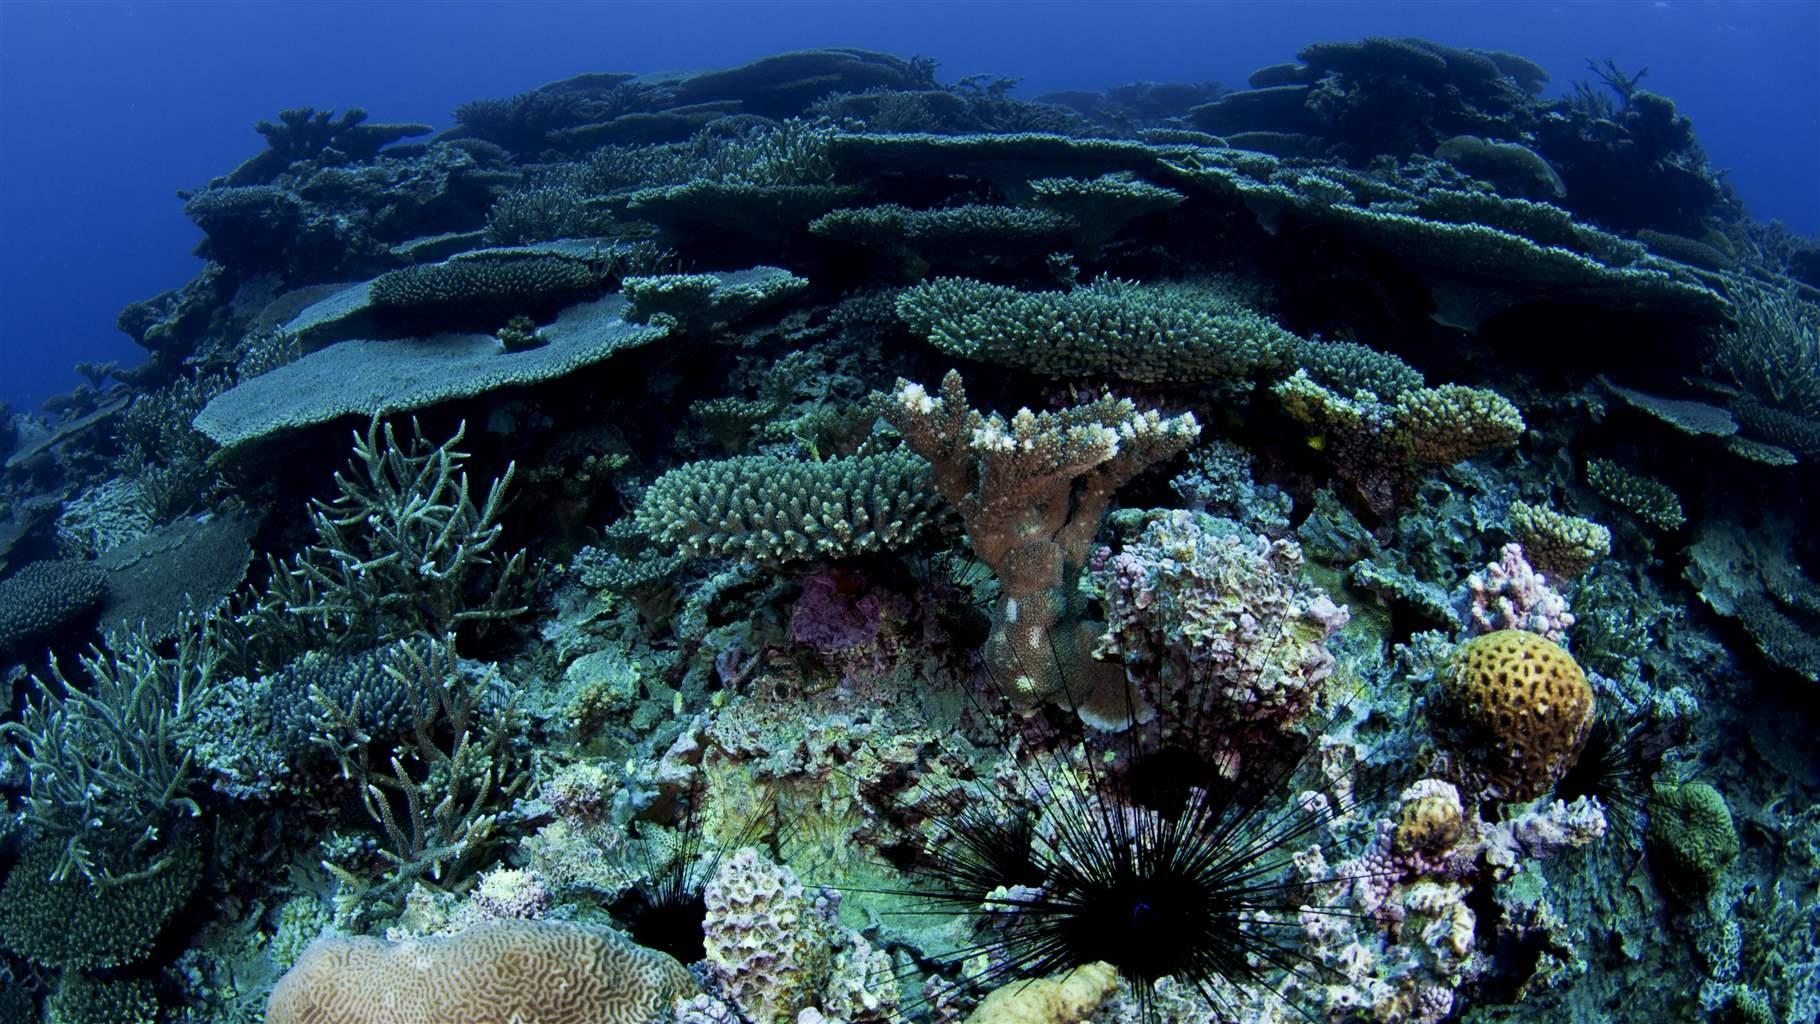 French Polynesia's Population Sees Ocean Health Declining, Want Stronger Marine Protections